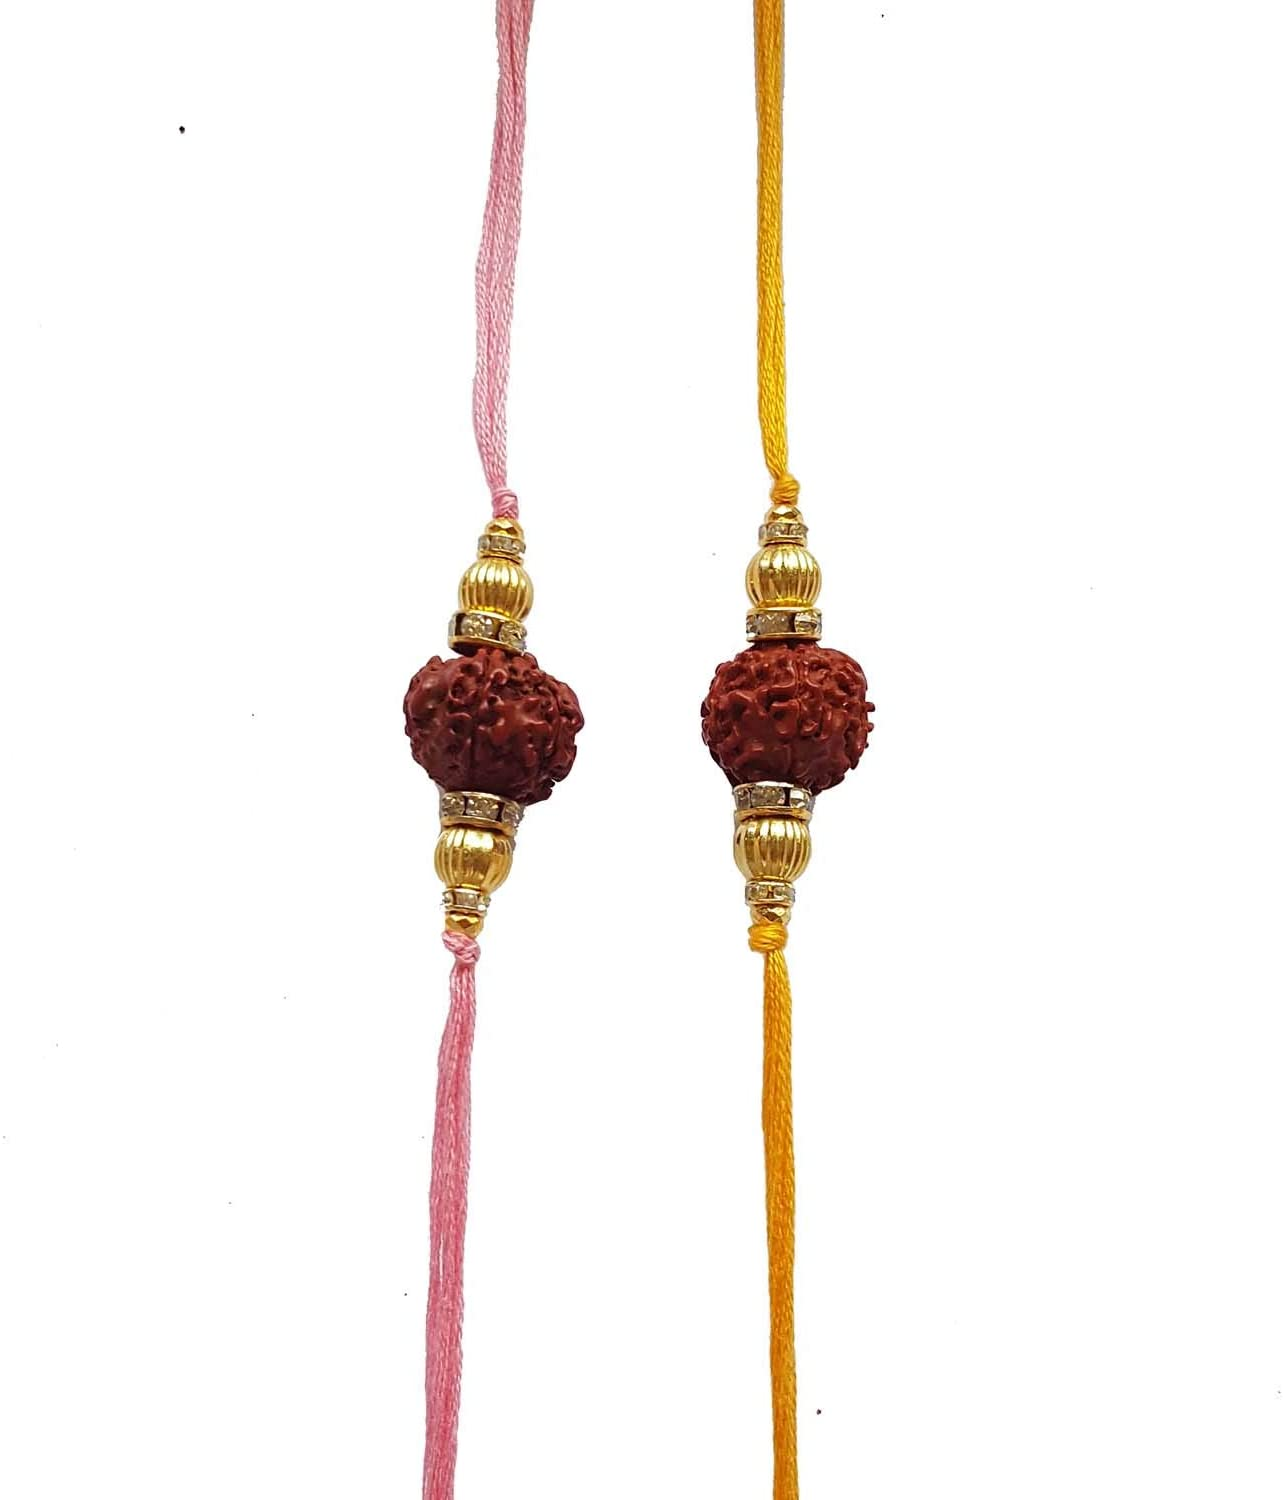 Jaipri, 2 Pcs Baby Pink Yellow Rudraksha Rakhi Set for Bhaiya, Bhabhi on Indian Rakhi Rakshabandhan Festival, Best Bands for Brother